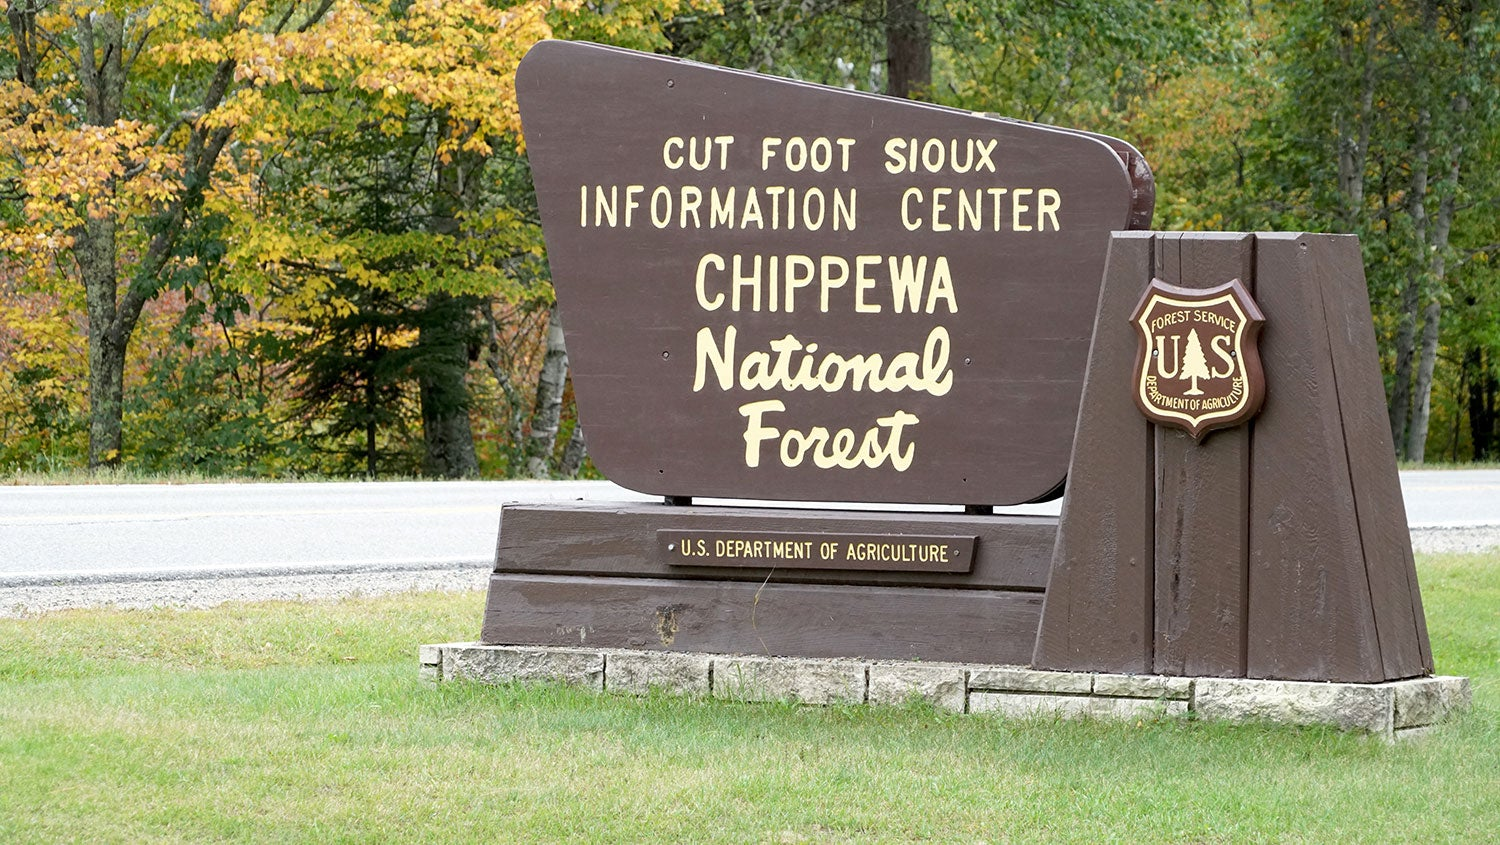 Chippewa National Forest sign.